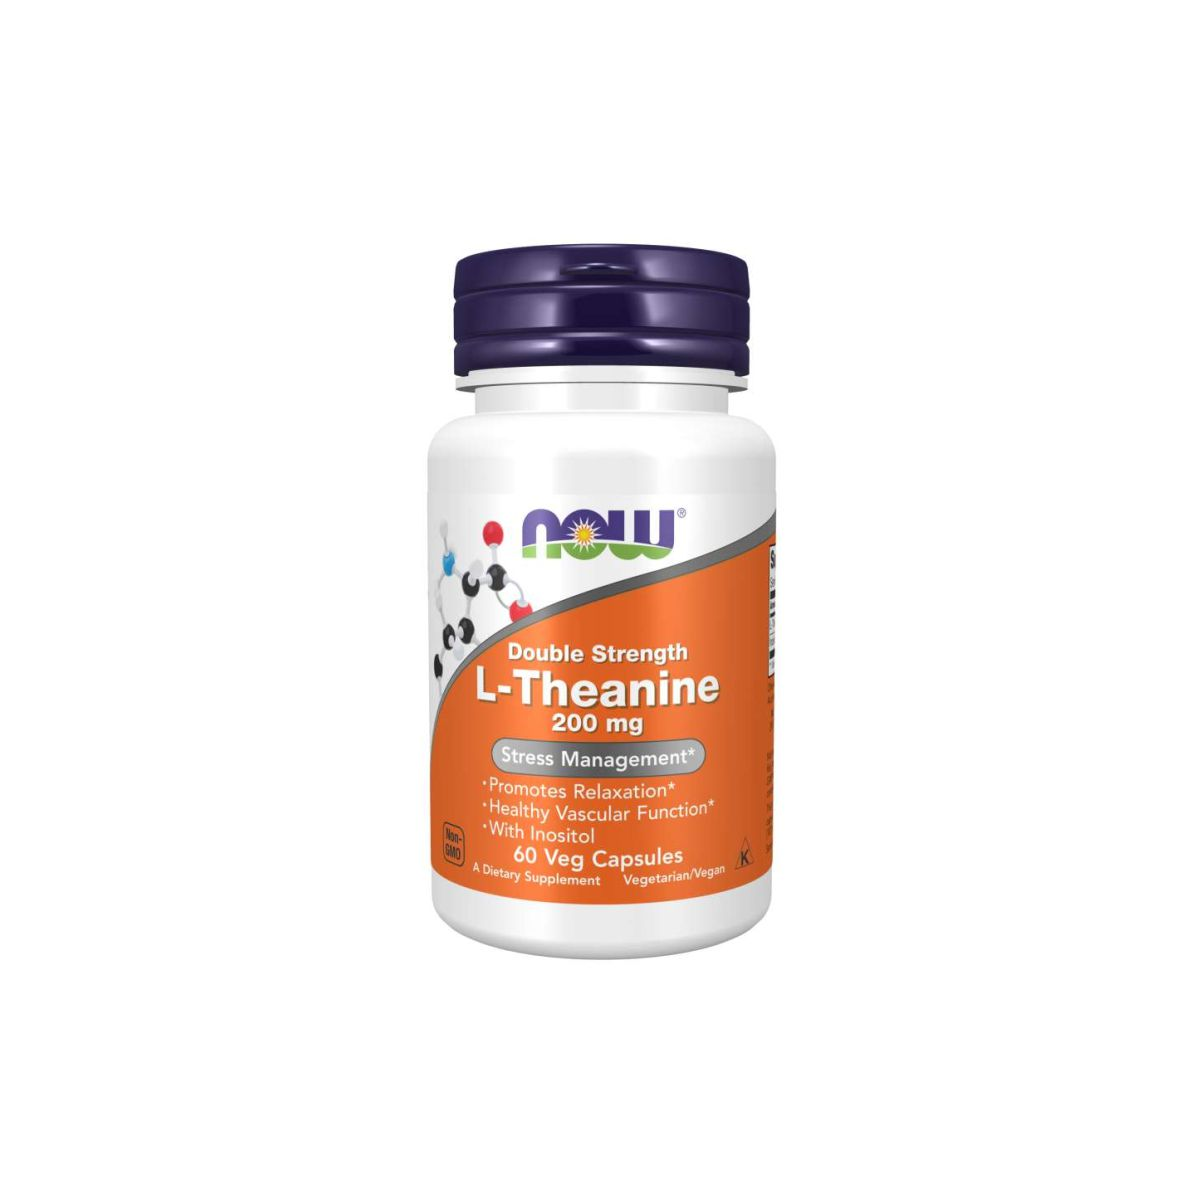 L-Theanine 200mg Double Strength 60 Caps - Now Foods